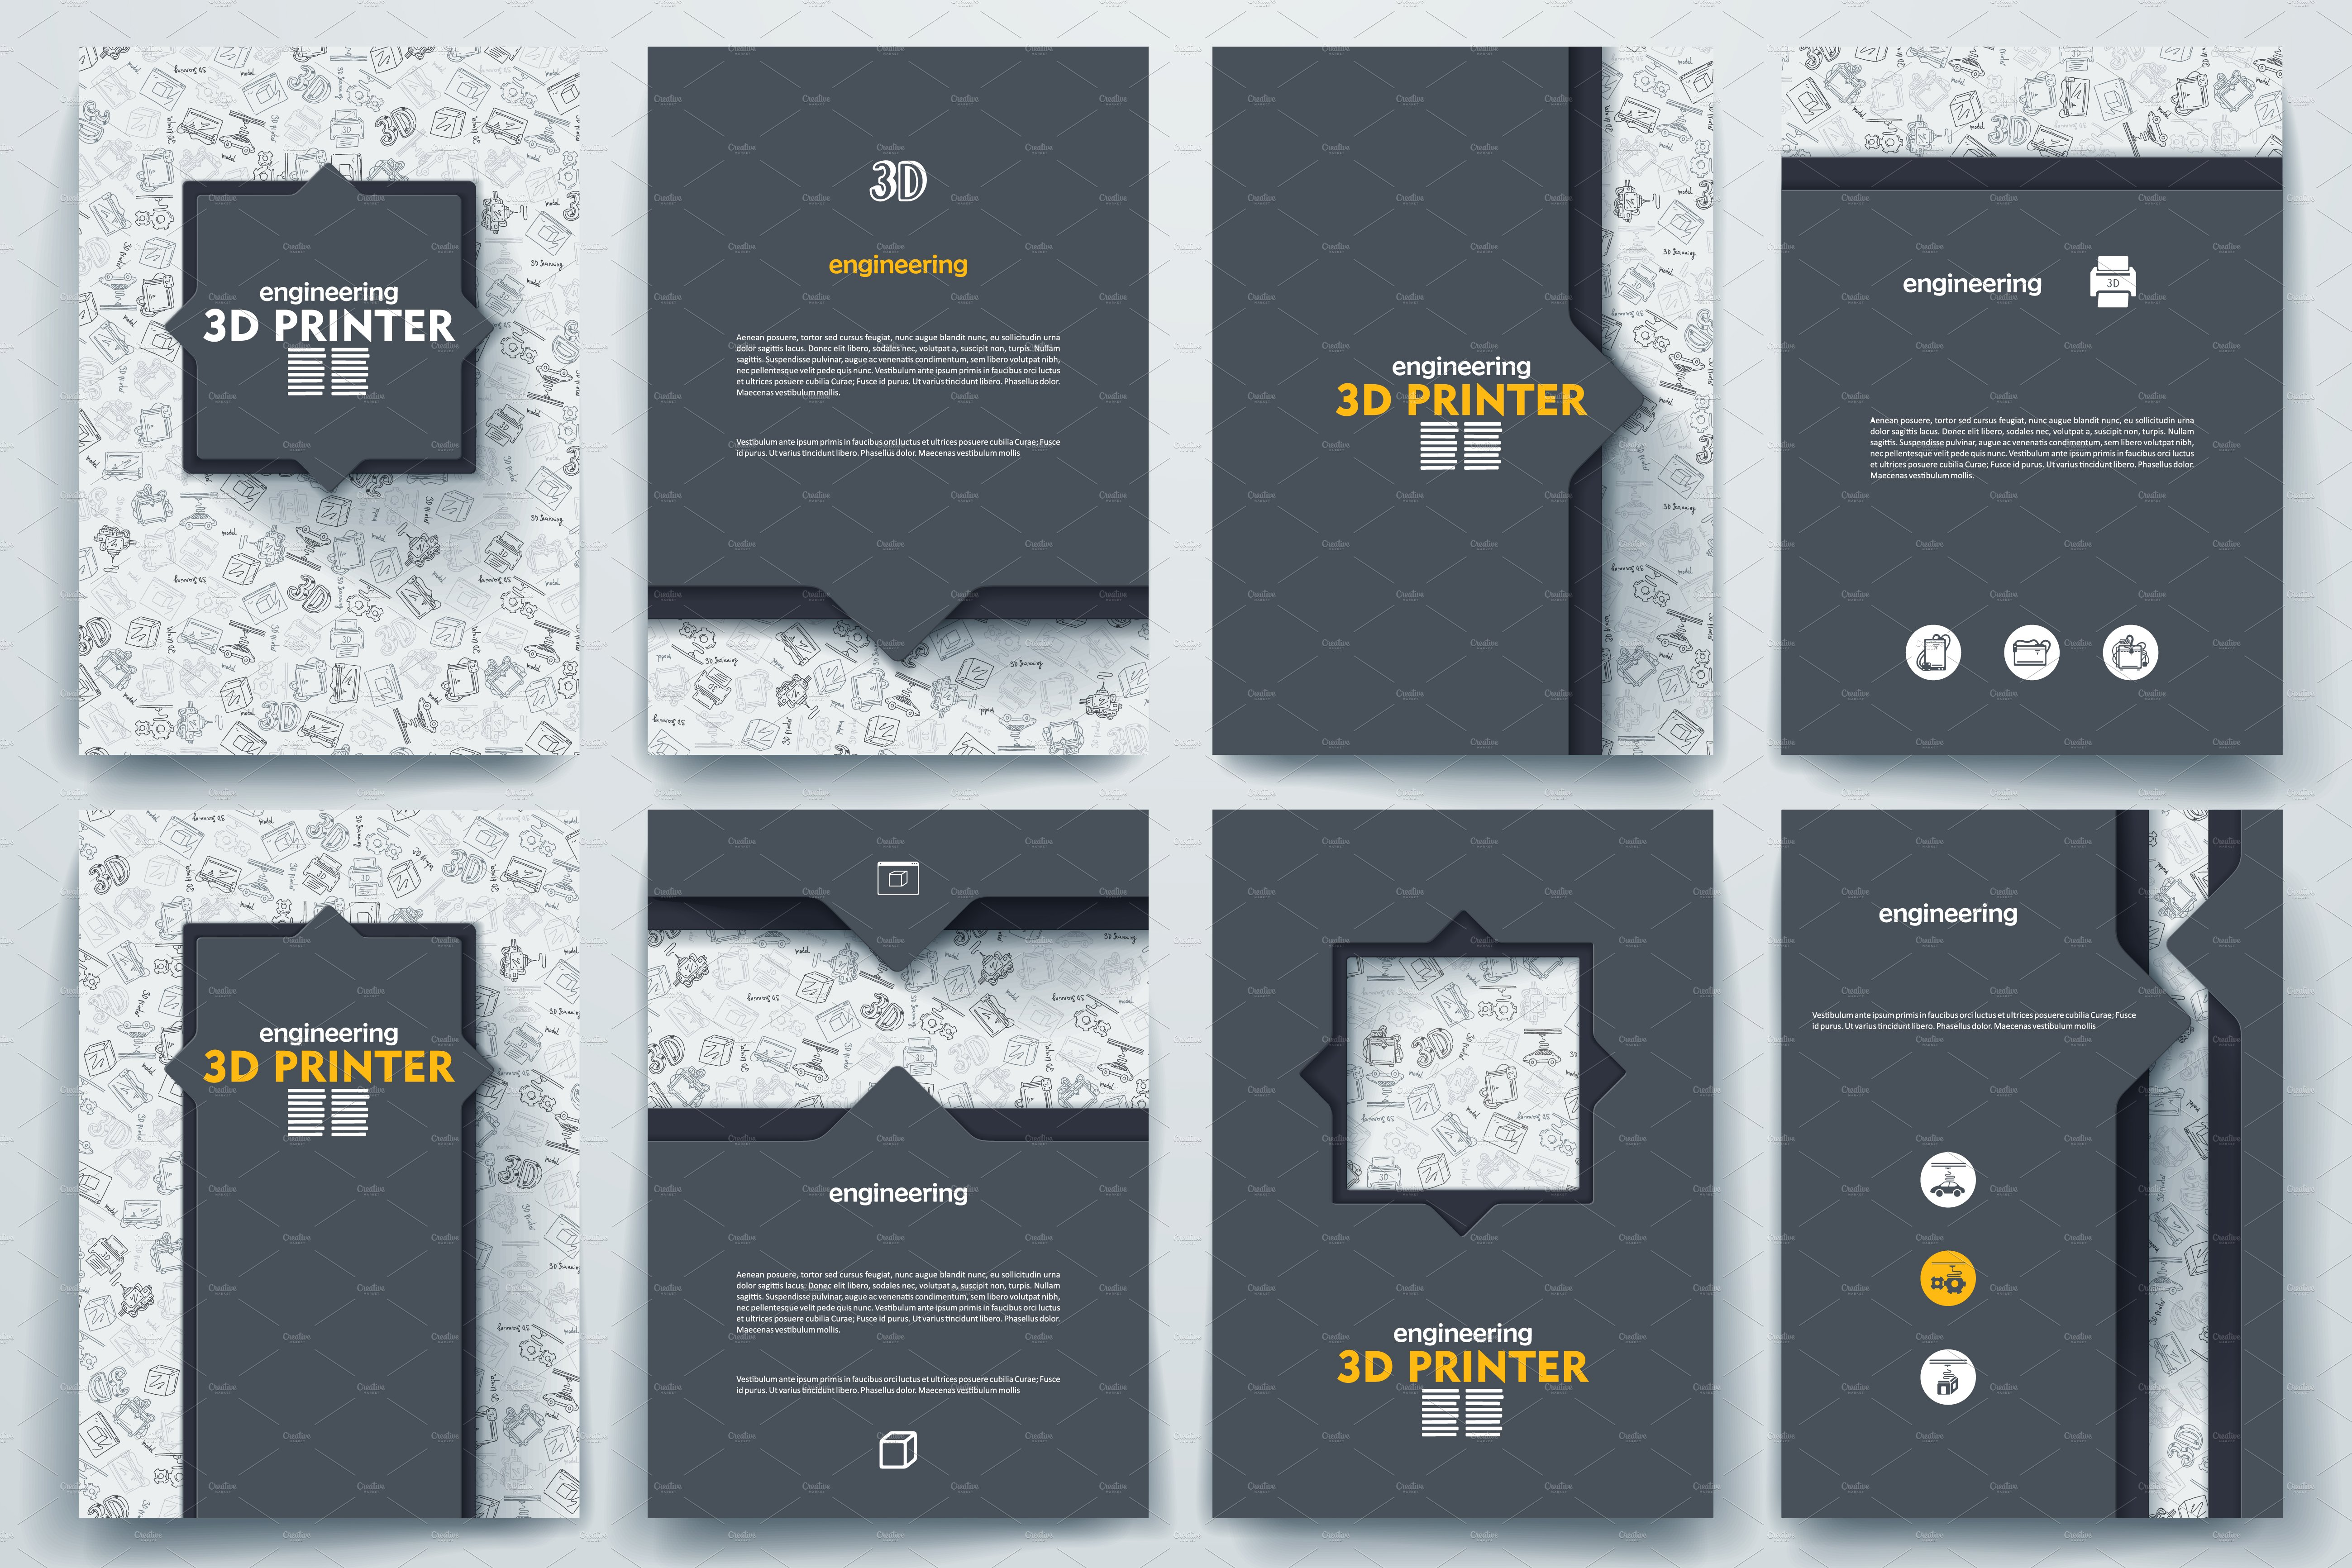 3d brochure design - brochure on 3d printer theme brochure templates